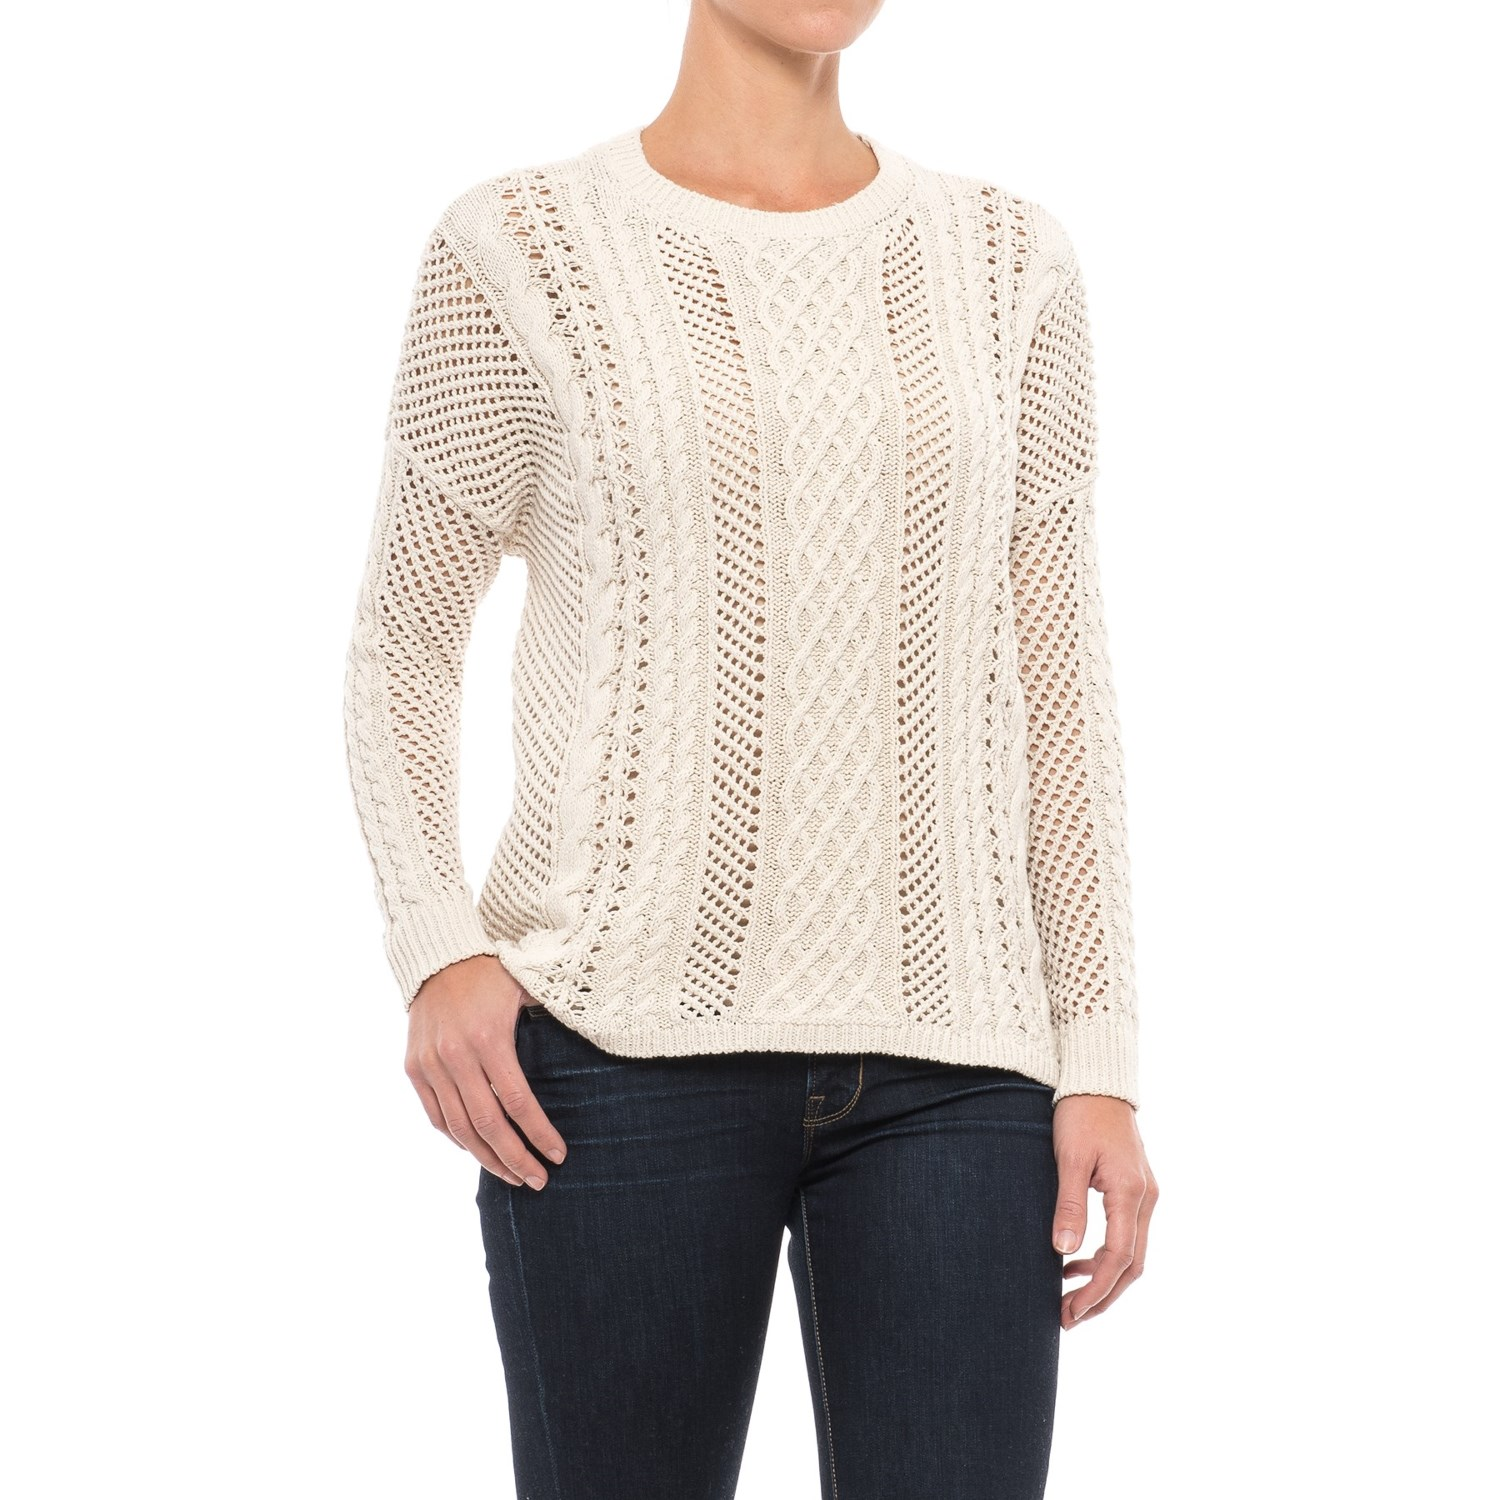 JACHS NY Crocheted Oversized Sweater (For Women) - Save 54%